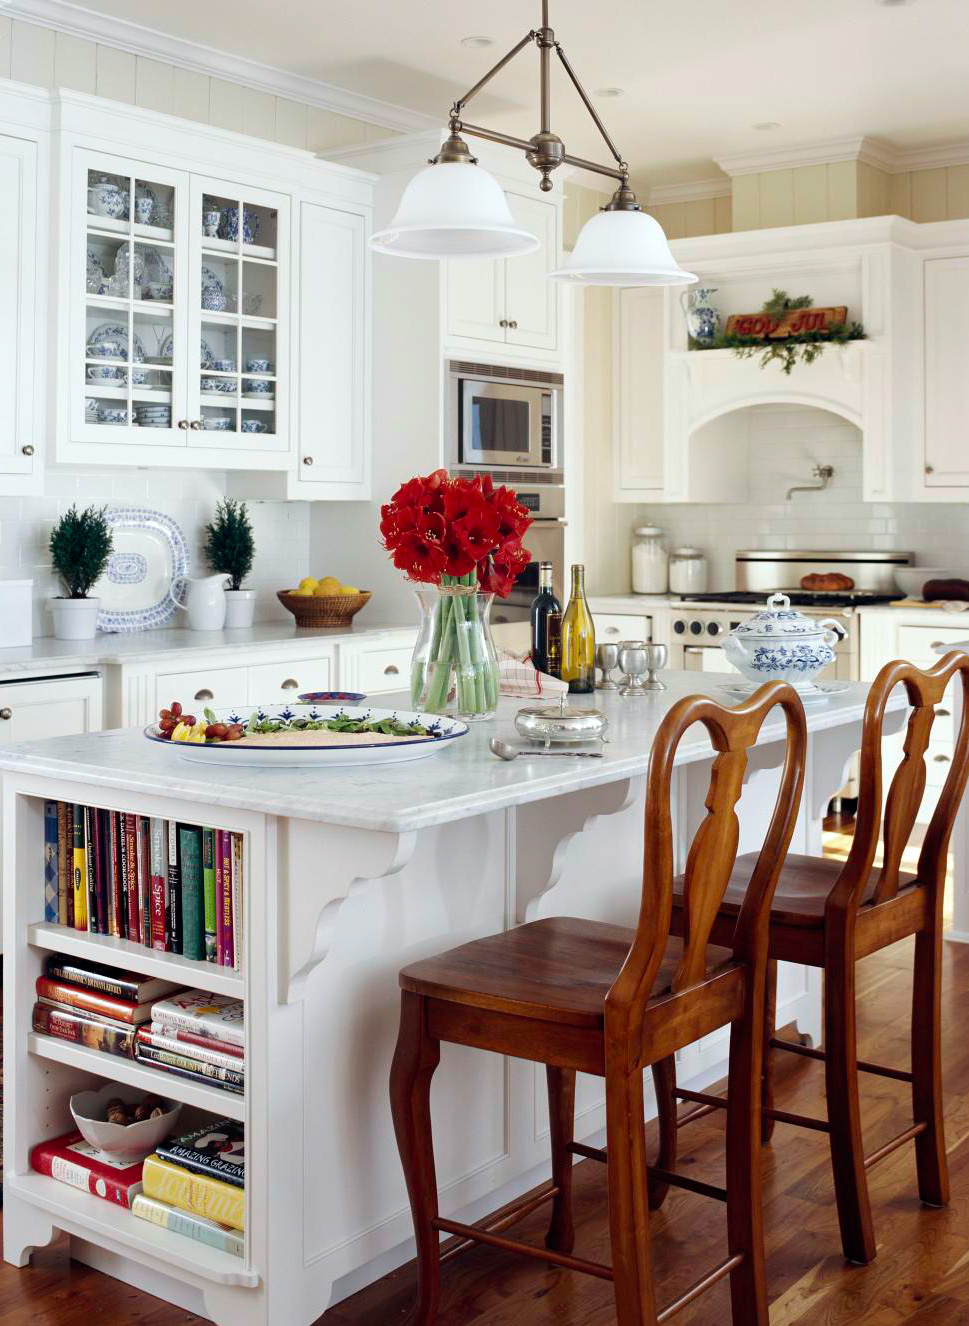 Cottage style in the kitchen